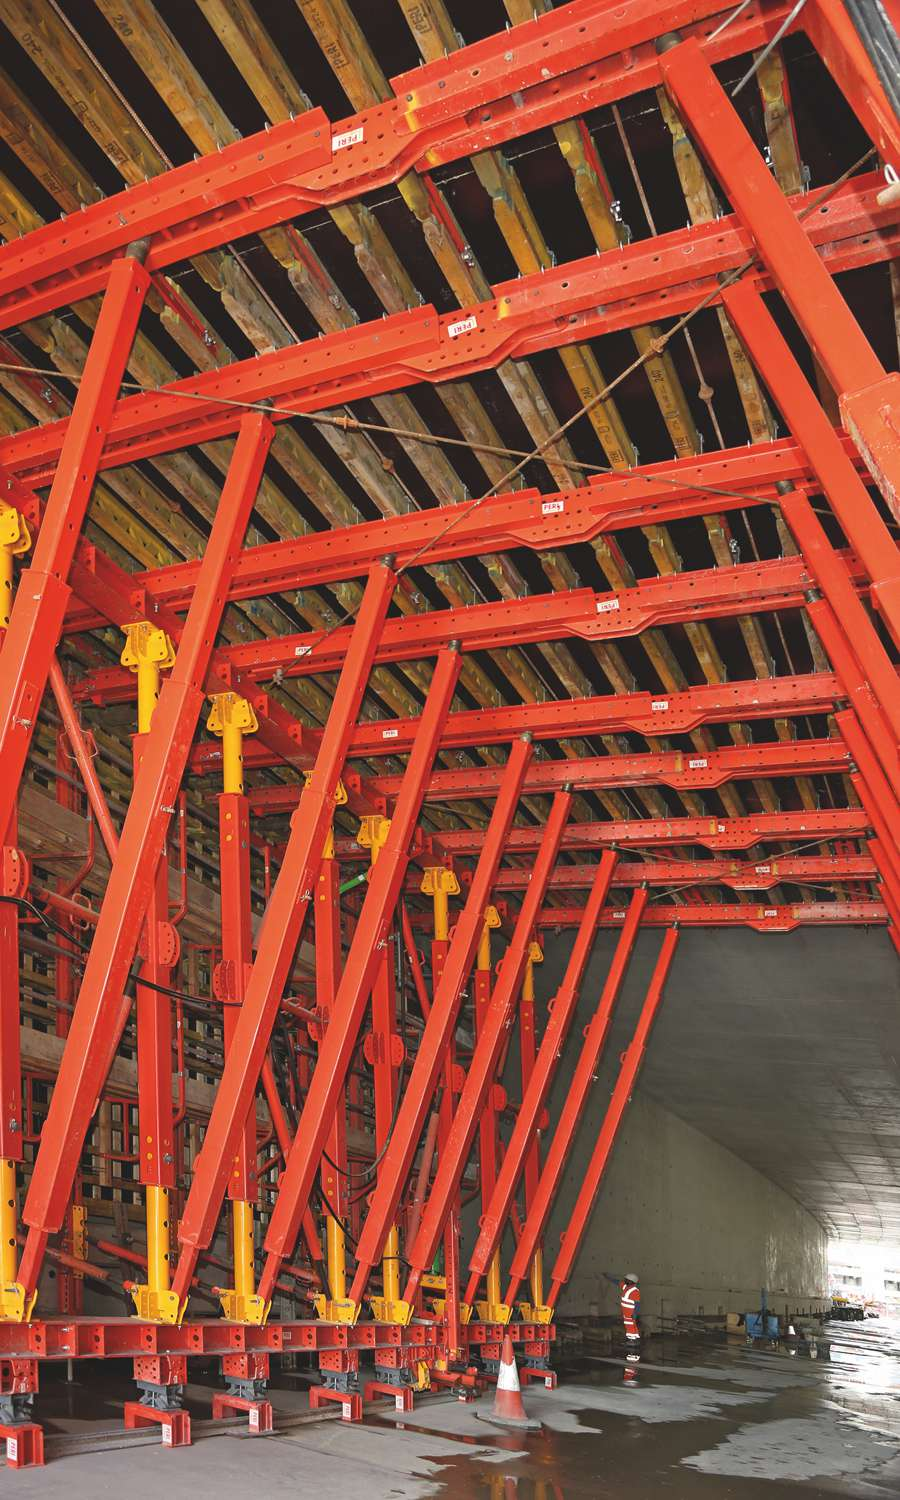 With a customised VTC Tunnel Formwork Carriage, consisting of standard components from the VARIOKIT Engineering Construction Kit in combination with GT 24 Girders and Battens in different lengths, the project requirements could be met.